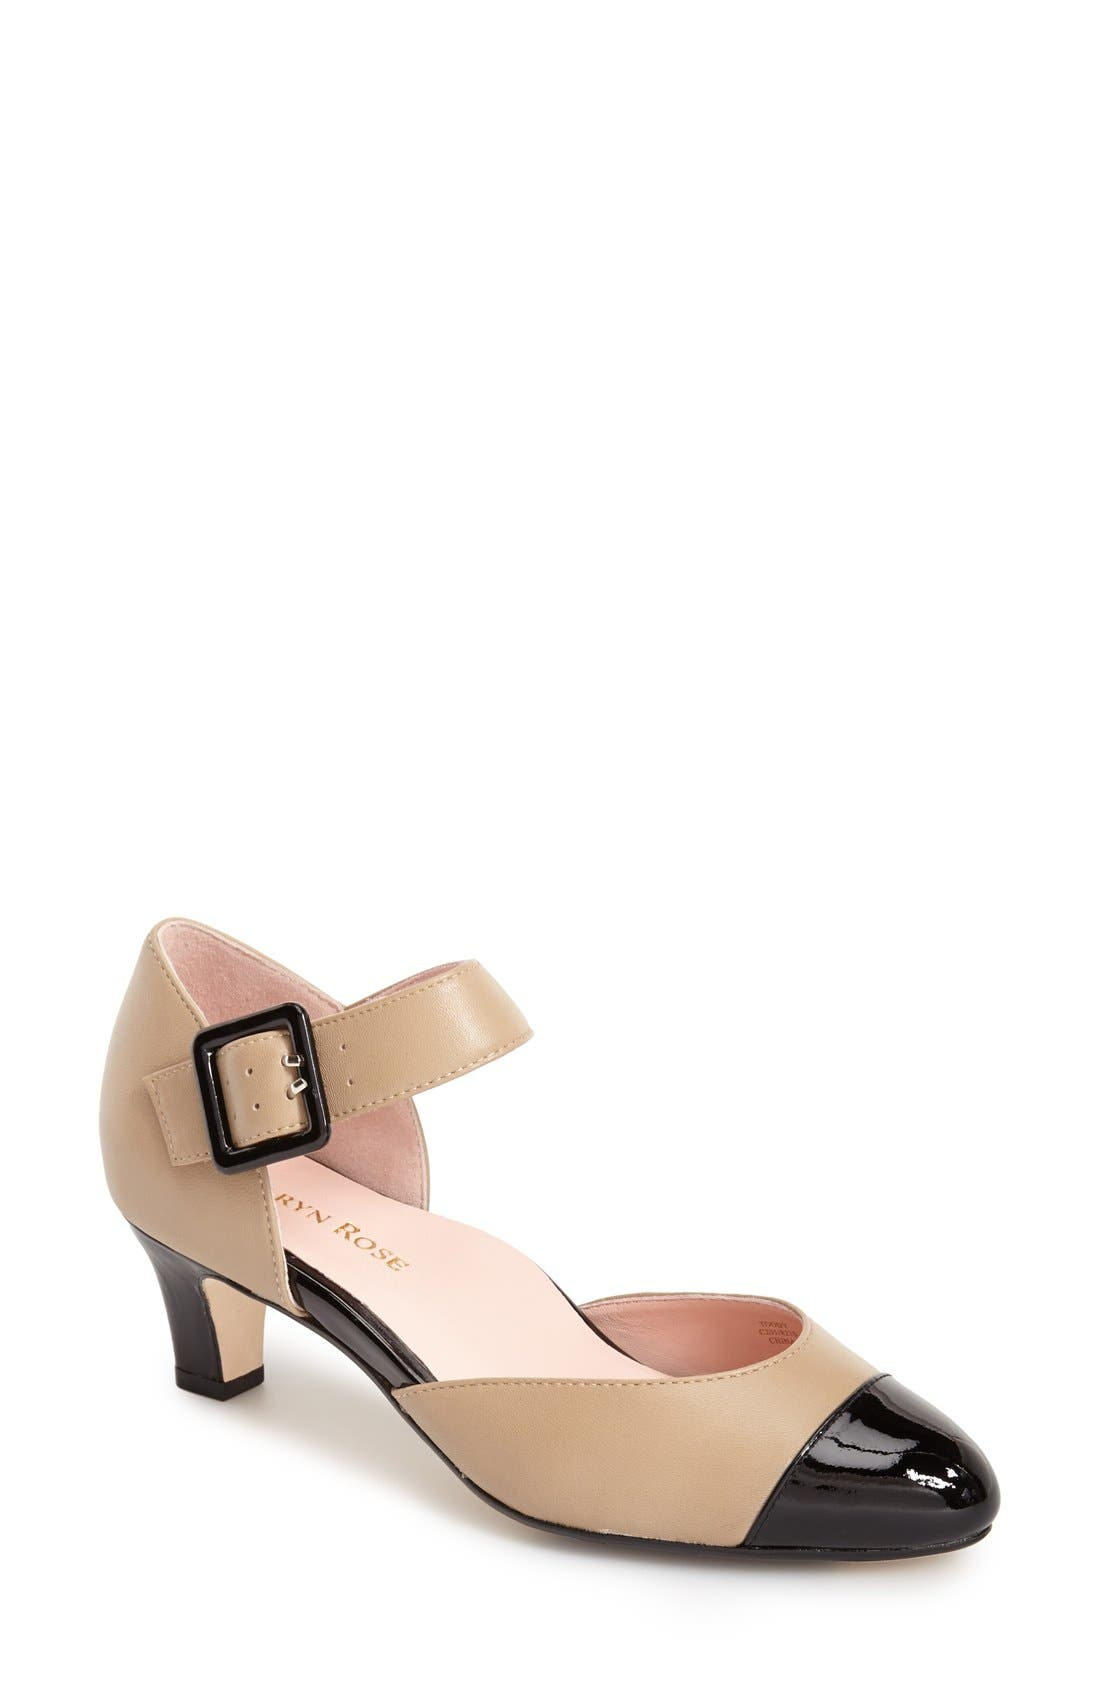 Alternate Image 1 Selected - Taryn Rose 'Toody Leather d'Orsay' Pump (Women)